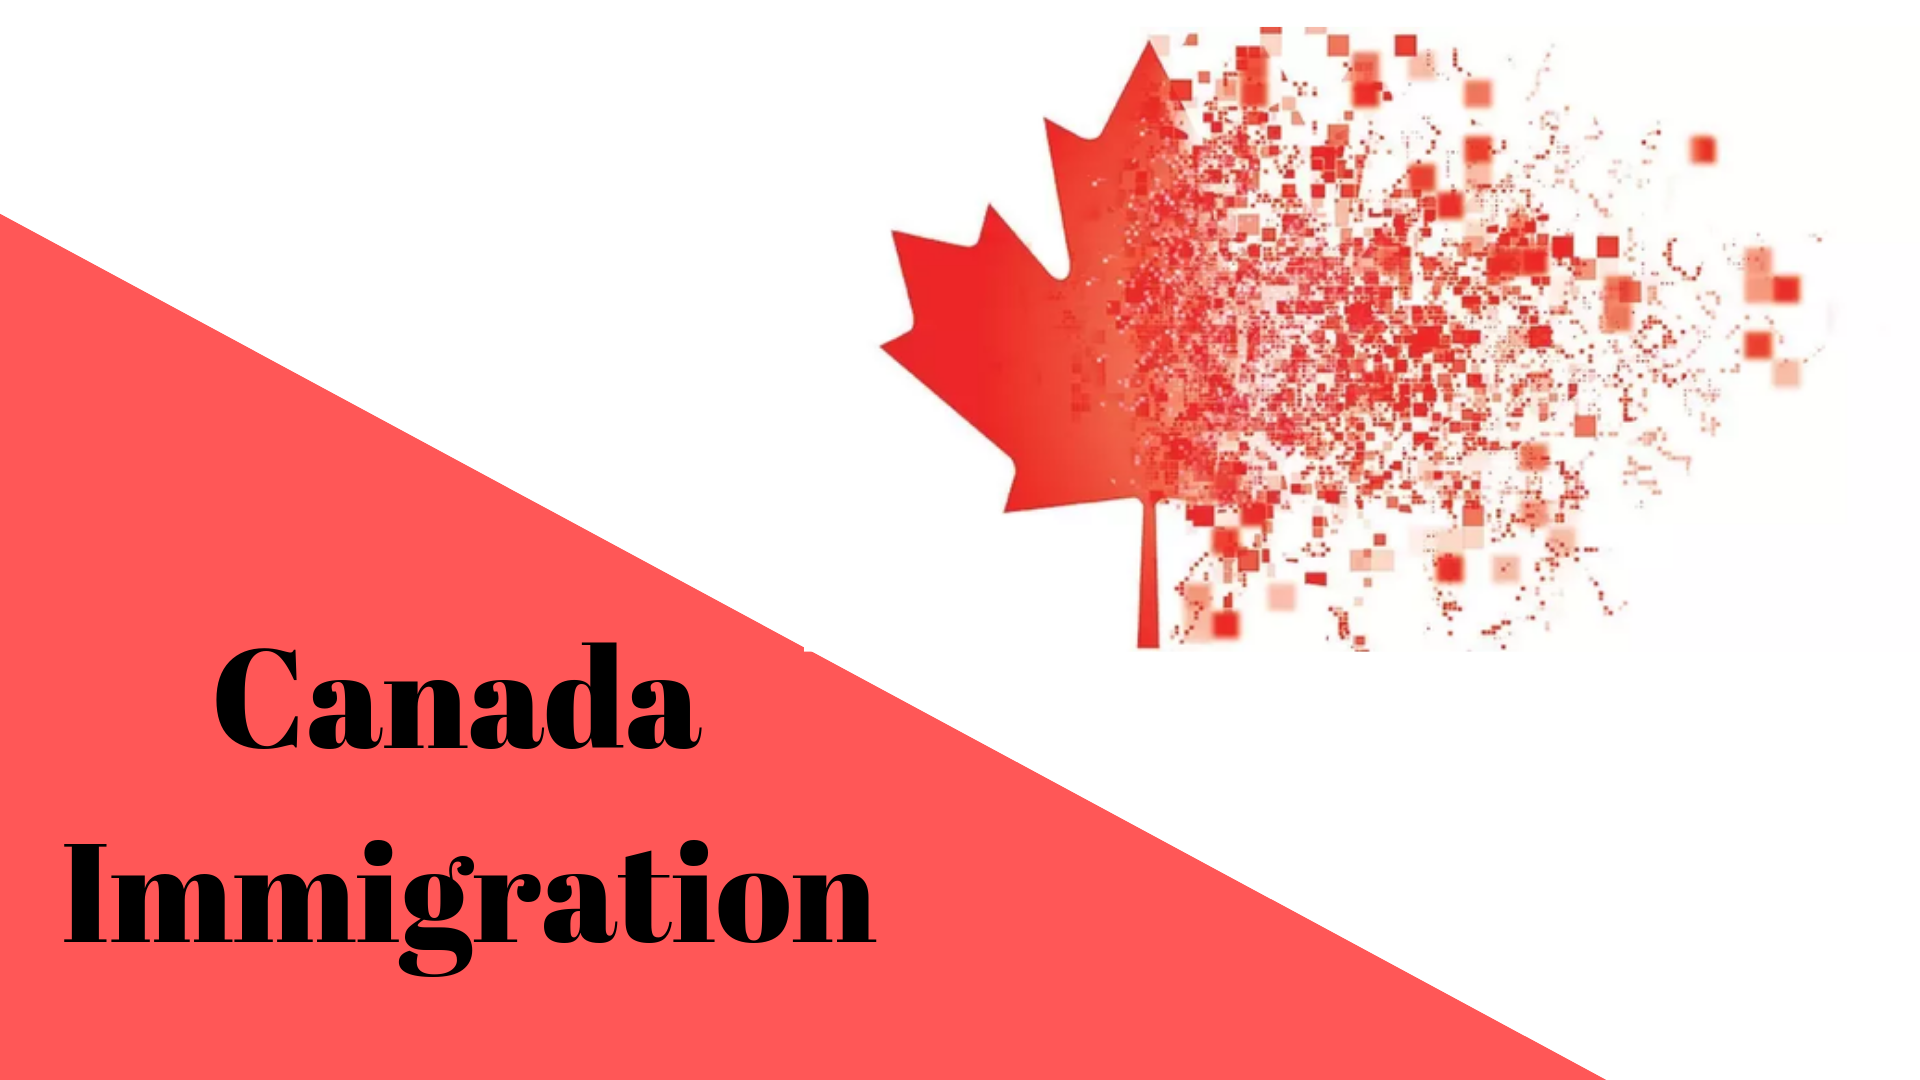 Who are the best immigration consultants for Canada?